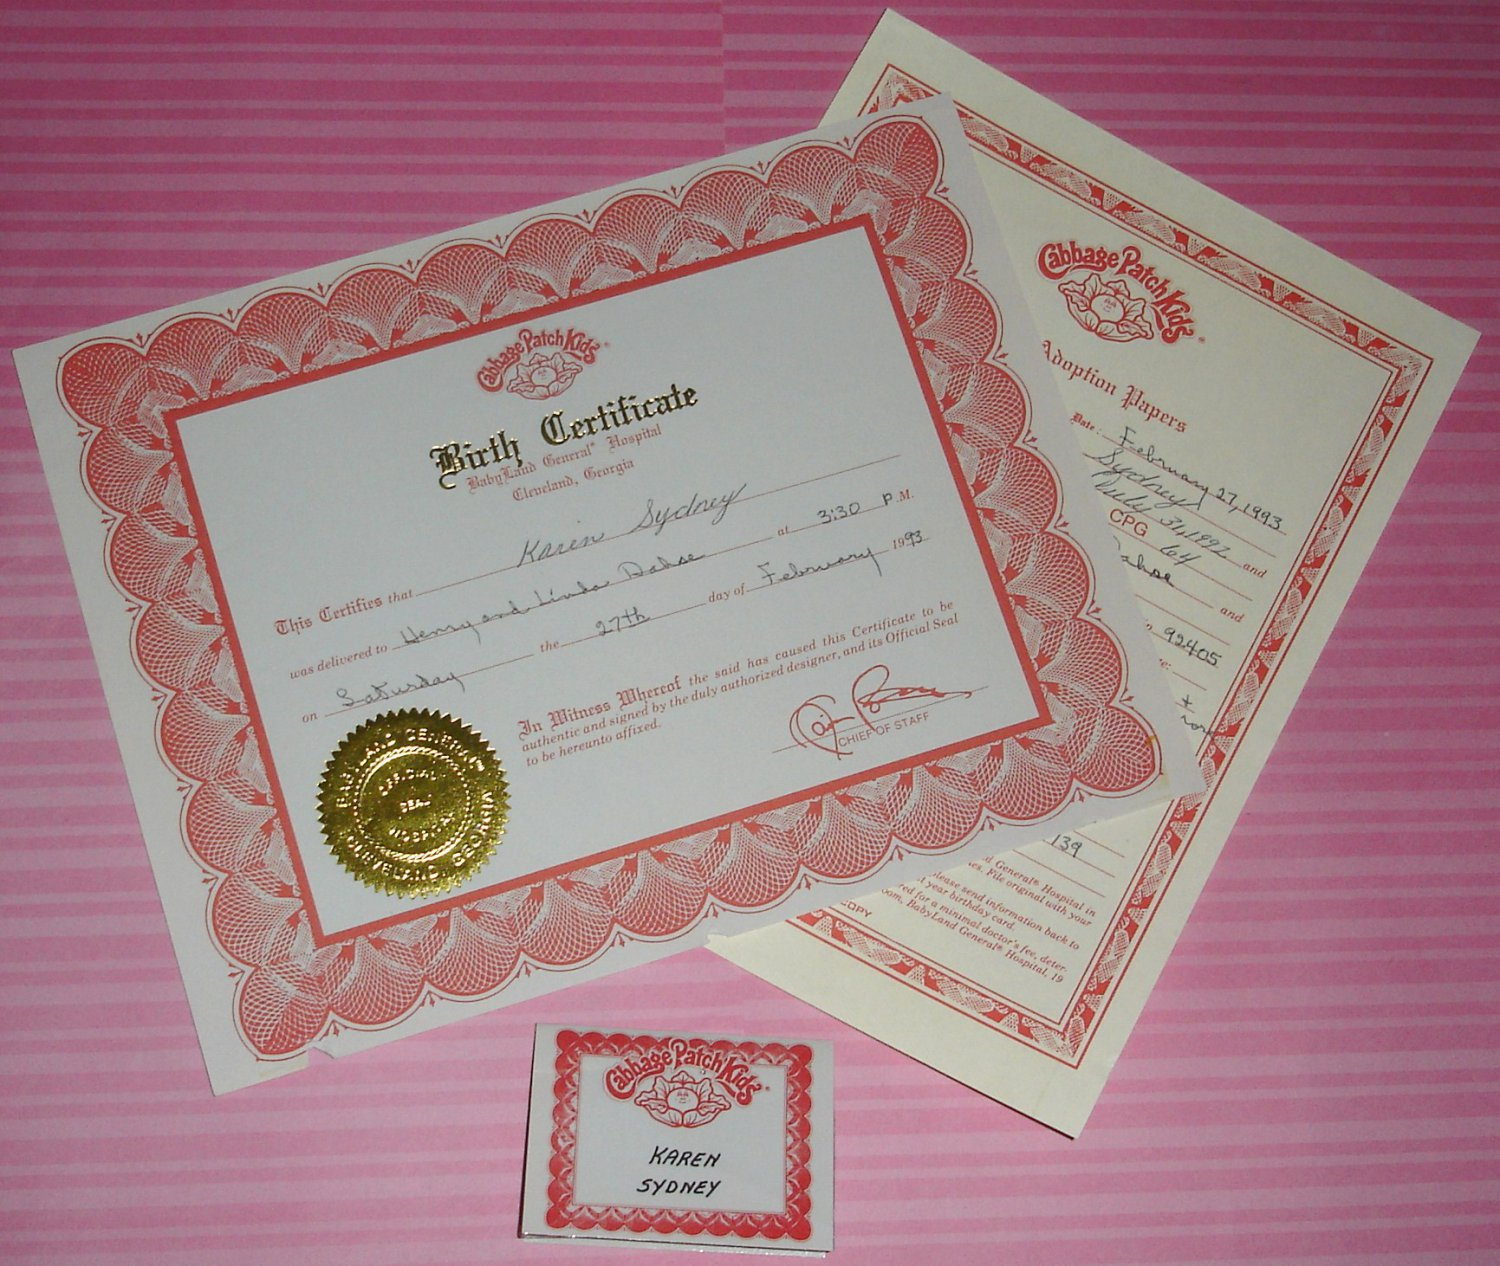 Free cabbage patch birth certificate template image collections free cabbage patch birth certificate template image collections delighted doll birth certificate template contemporary cabbage patch yadclub Choice Image